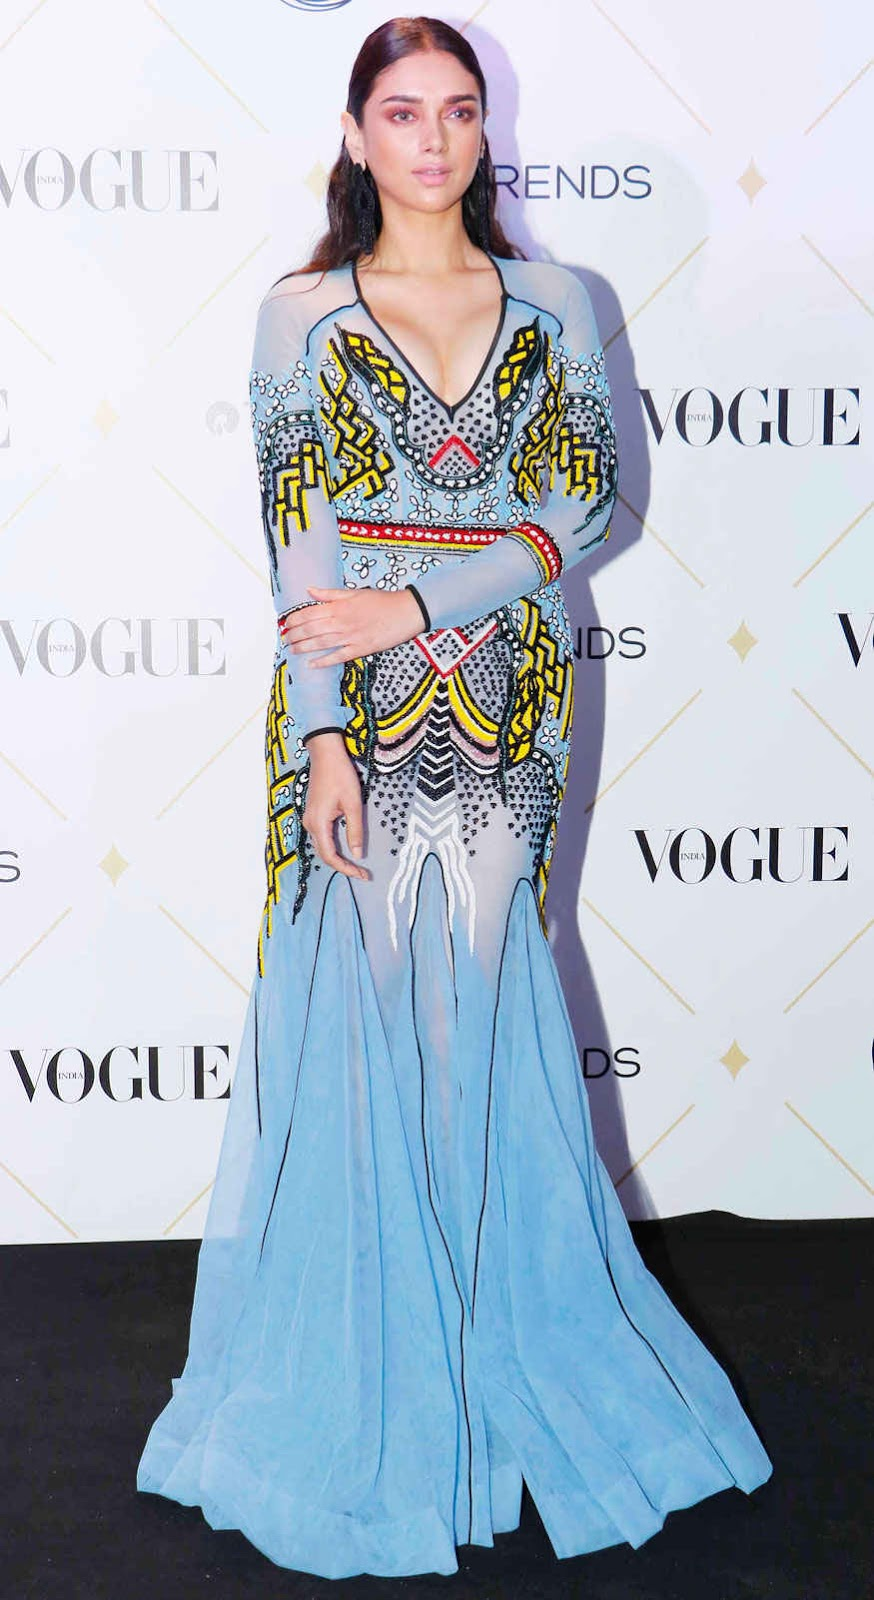 Aditi Rao Hydari SIzzles at The 'Vogue Beauty Awards 2017' on Wednesday